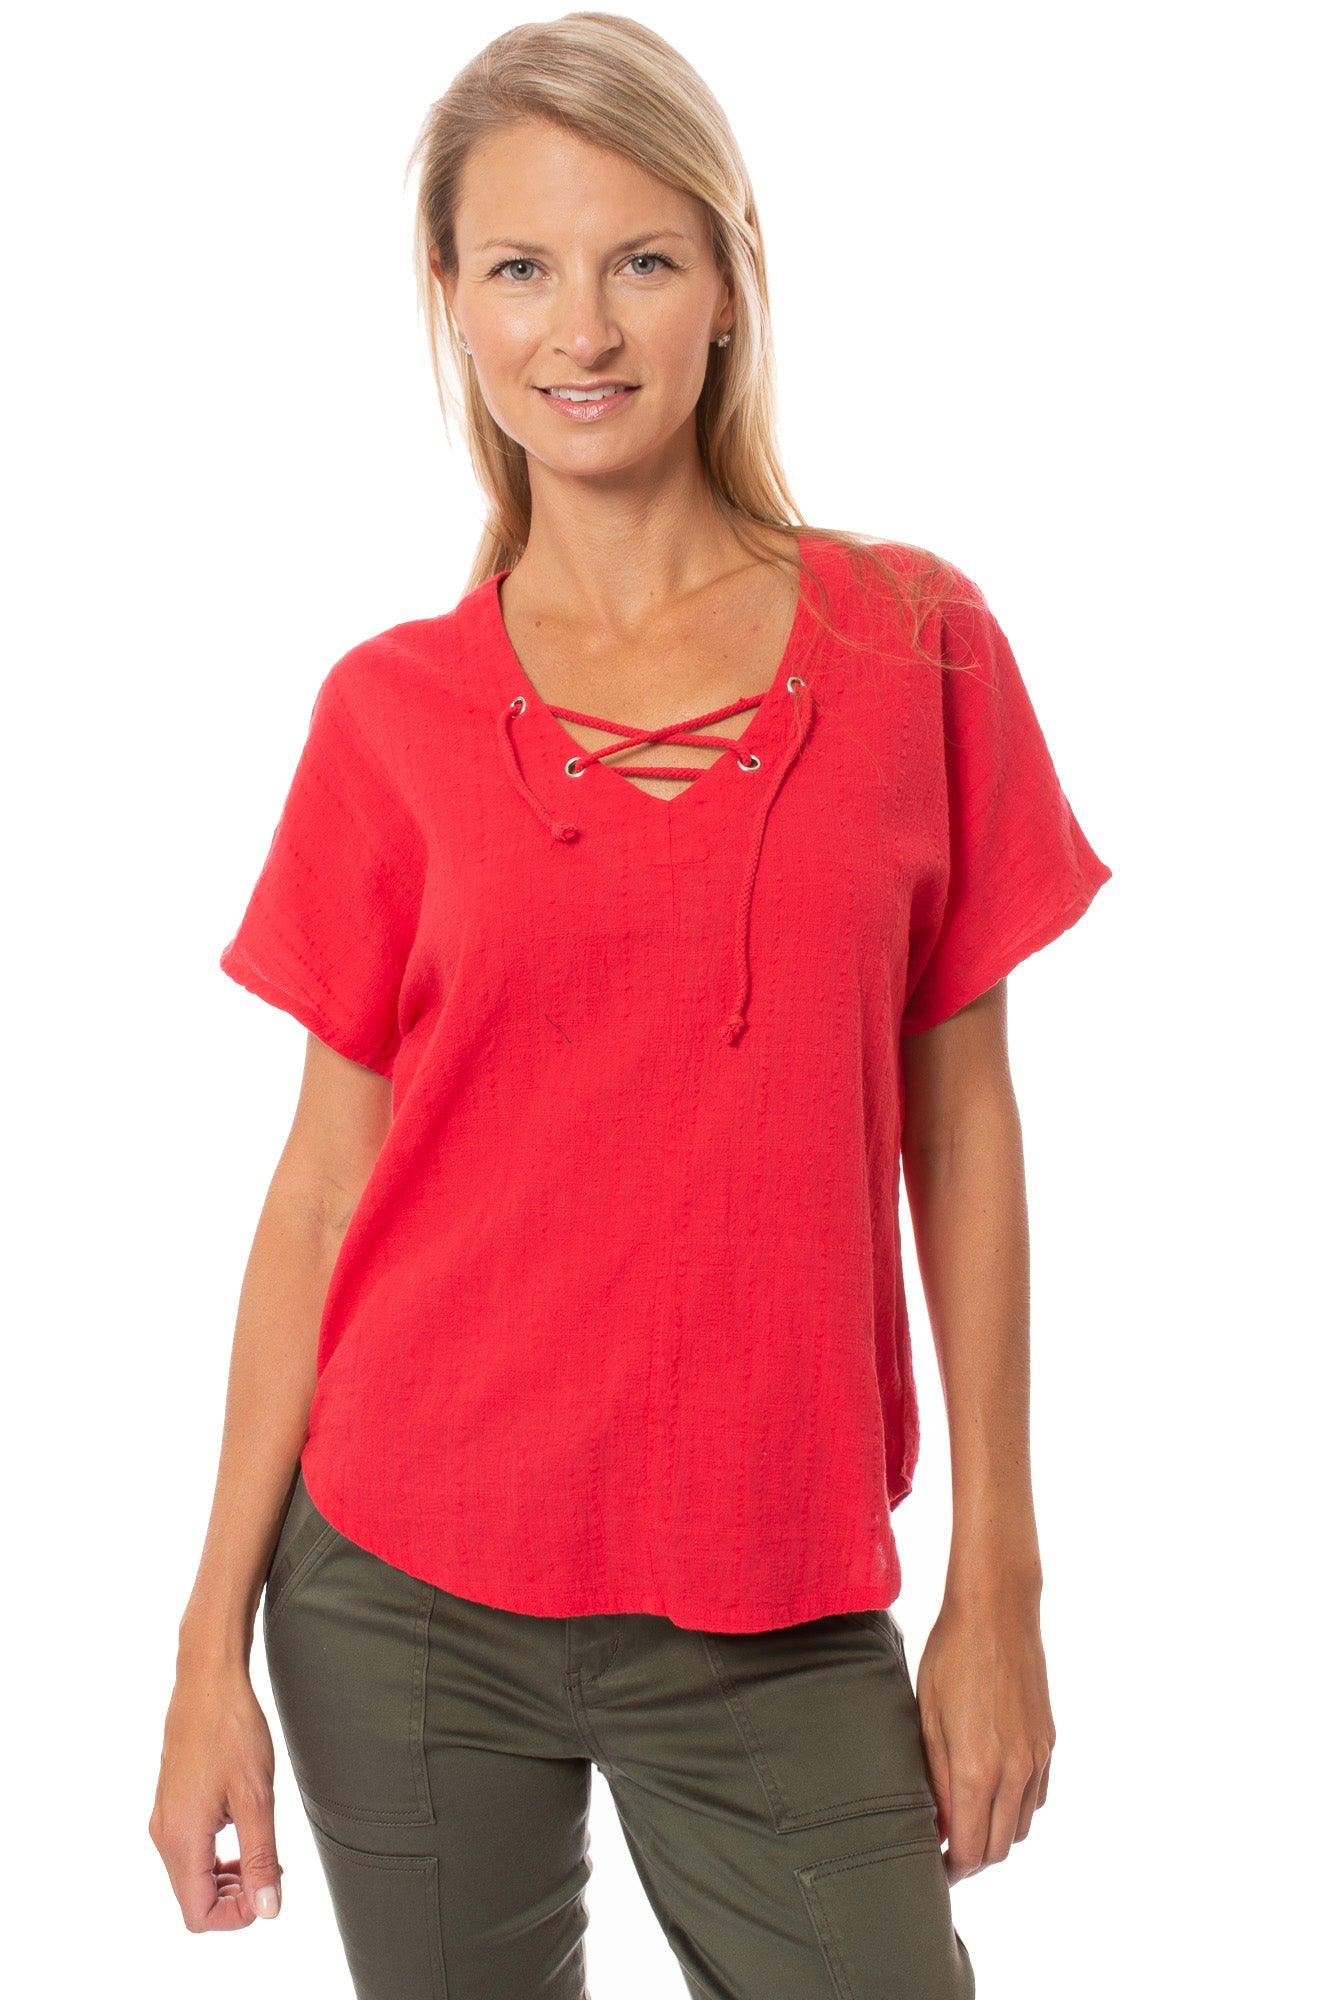 Bobi - Lace Up Dolman (539-34301, Chili)